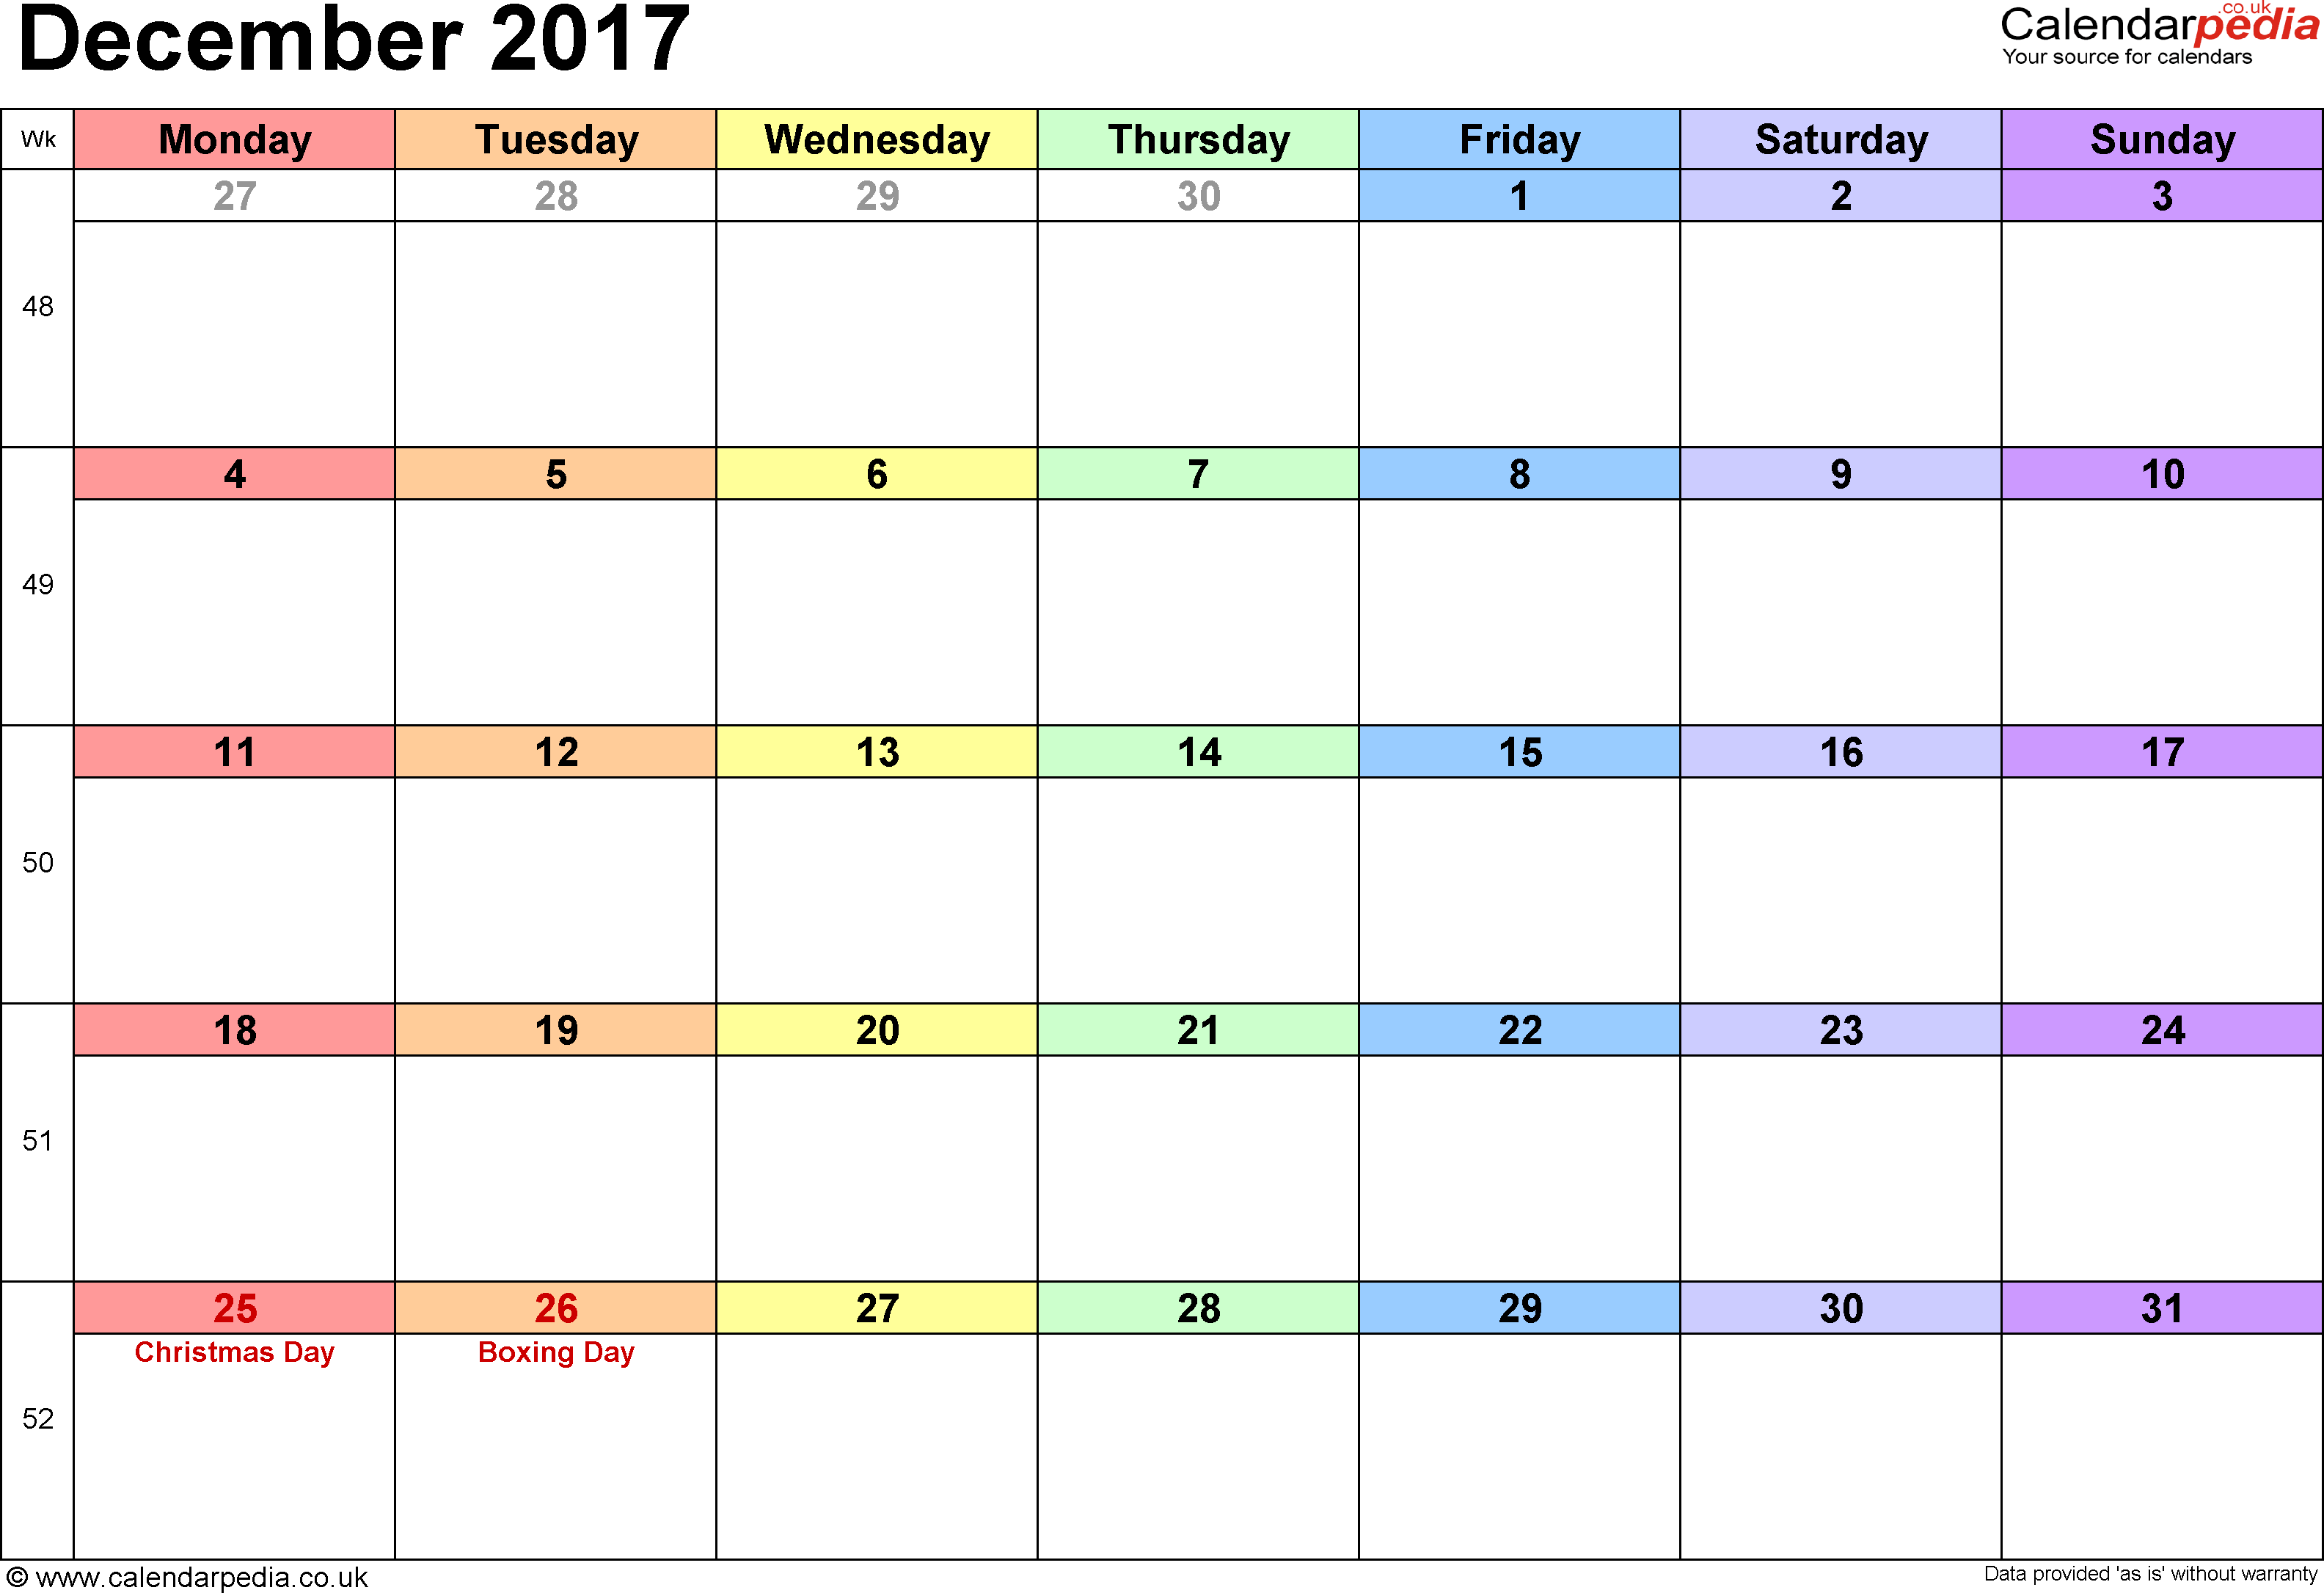 Calendar December 2017, landscape orientation, 1 page, with UK bank holidays and week numbers